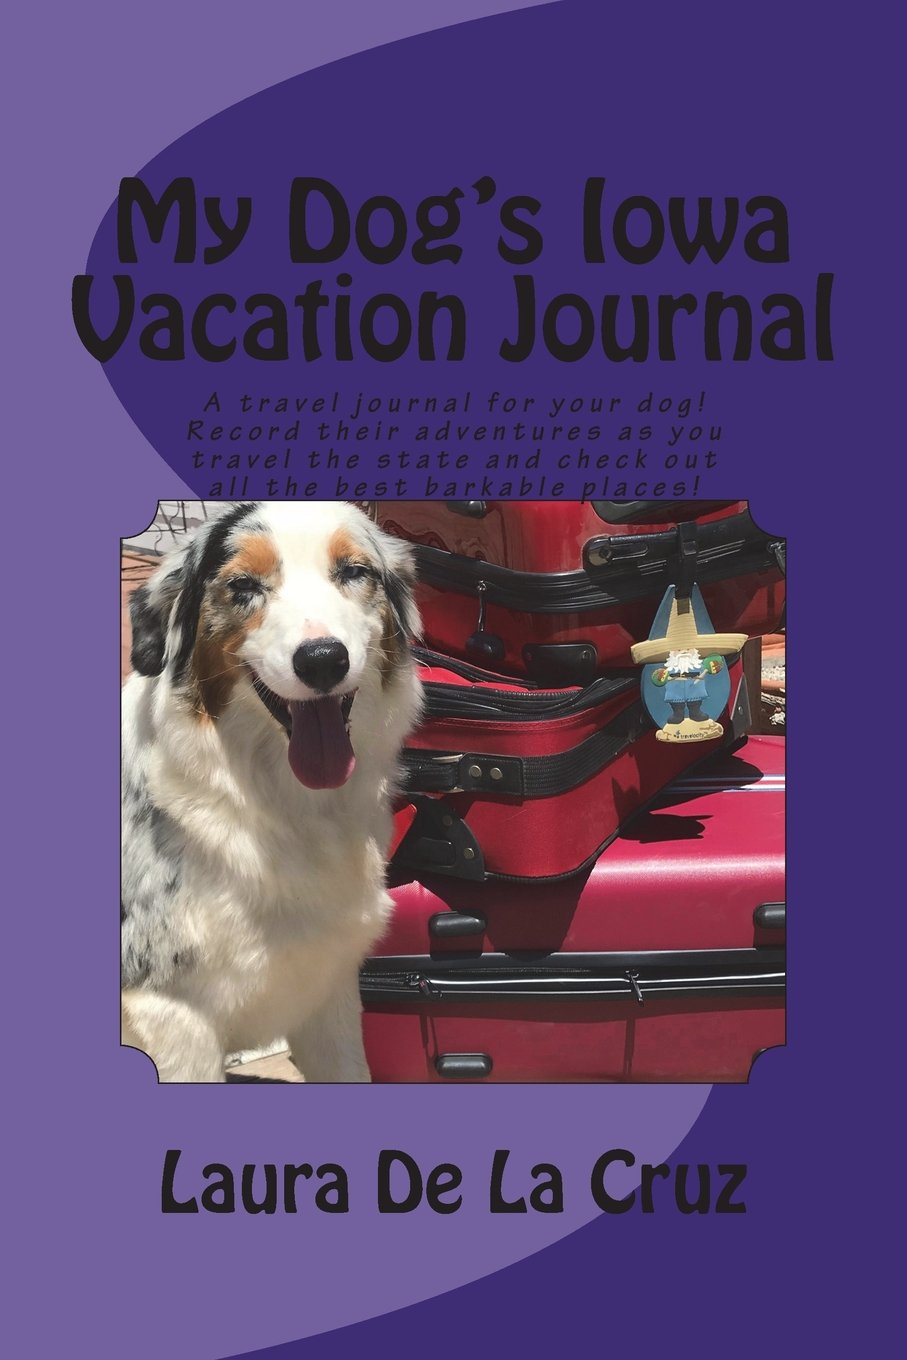 My Dog's Iowa Vacation Journal: A travel journal for your dog! Record their adventures as you travel the state and check out all the best barkable places! pdf epub